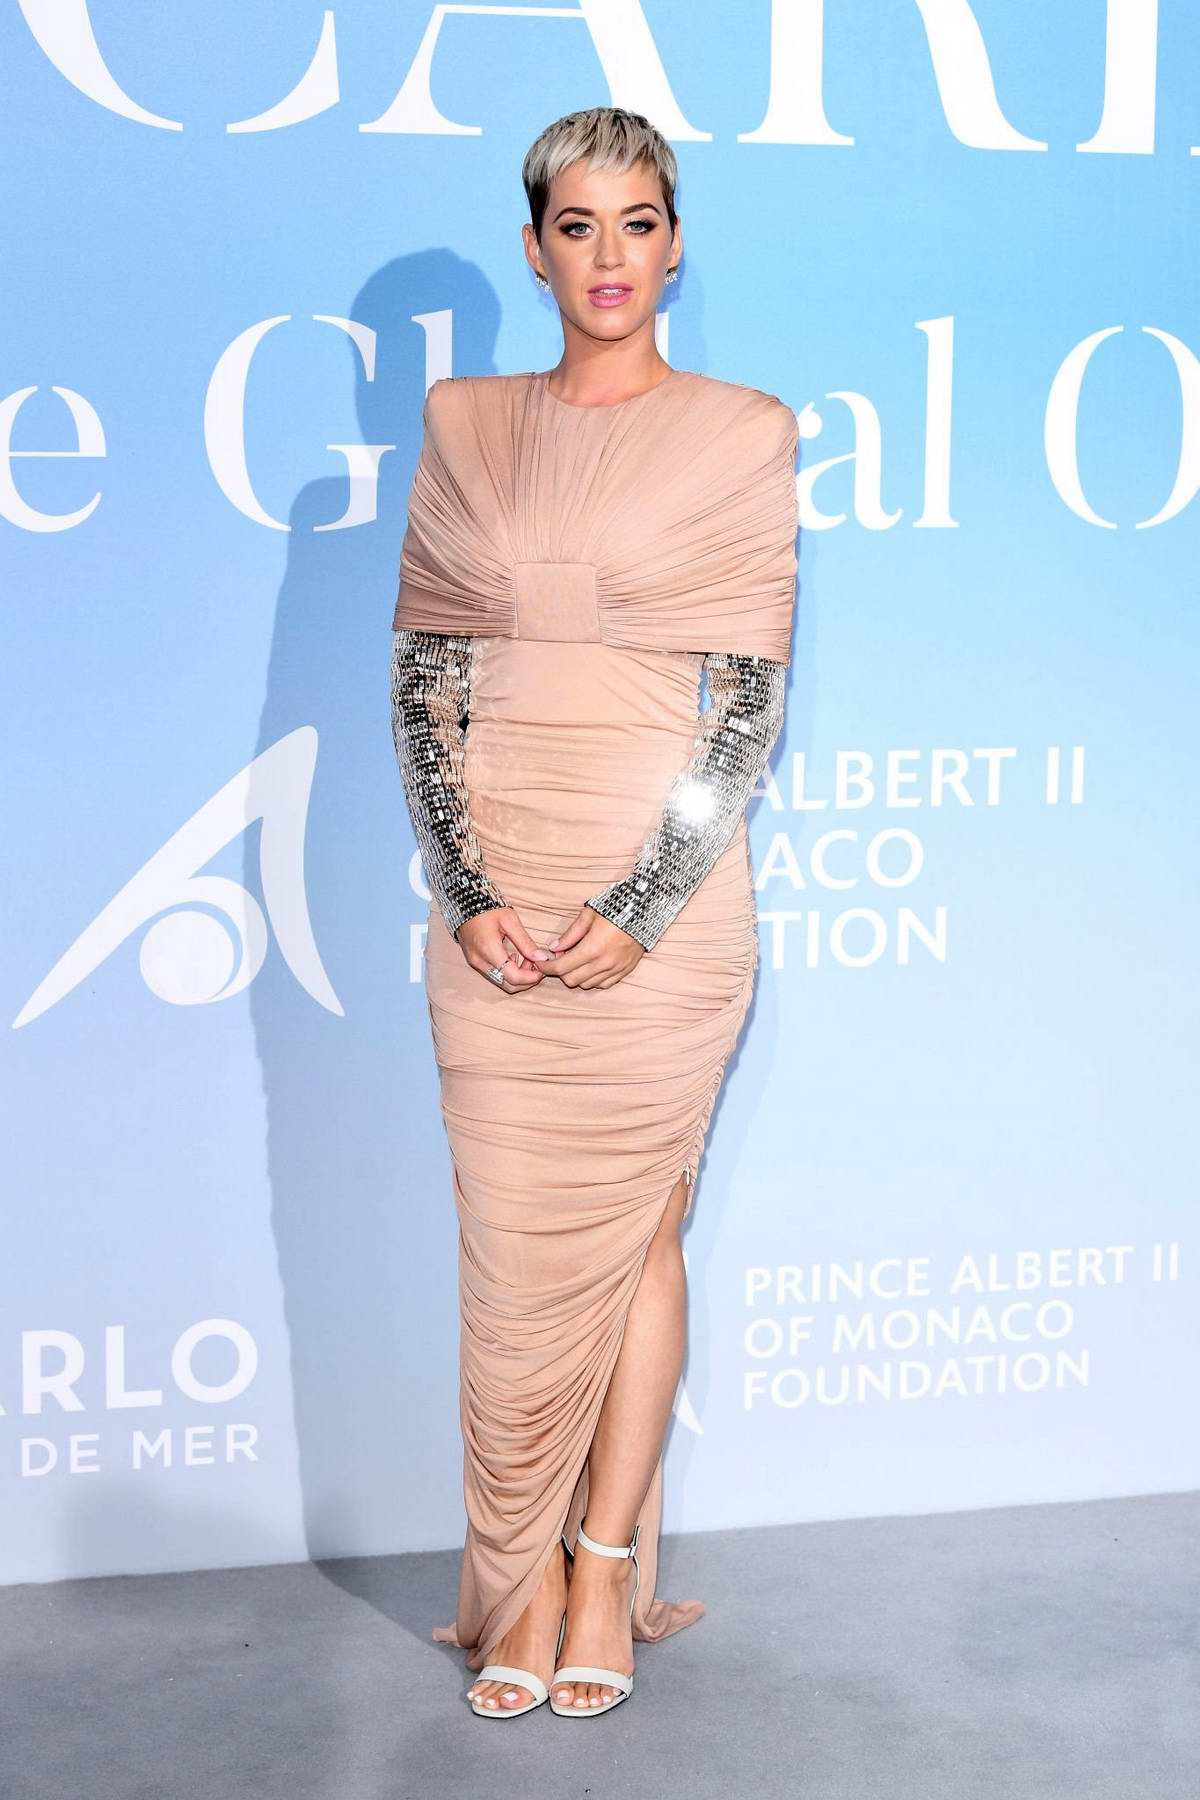 Katy Perry attends the Gala For The Global Ocean in Monte Carlo, Monaco